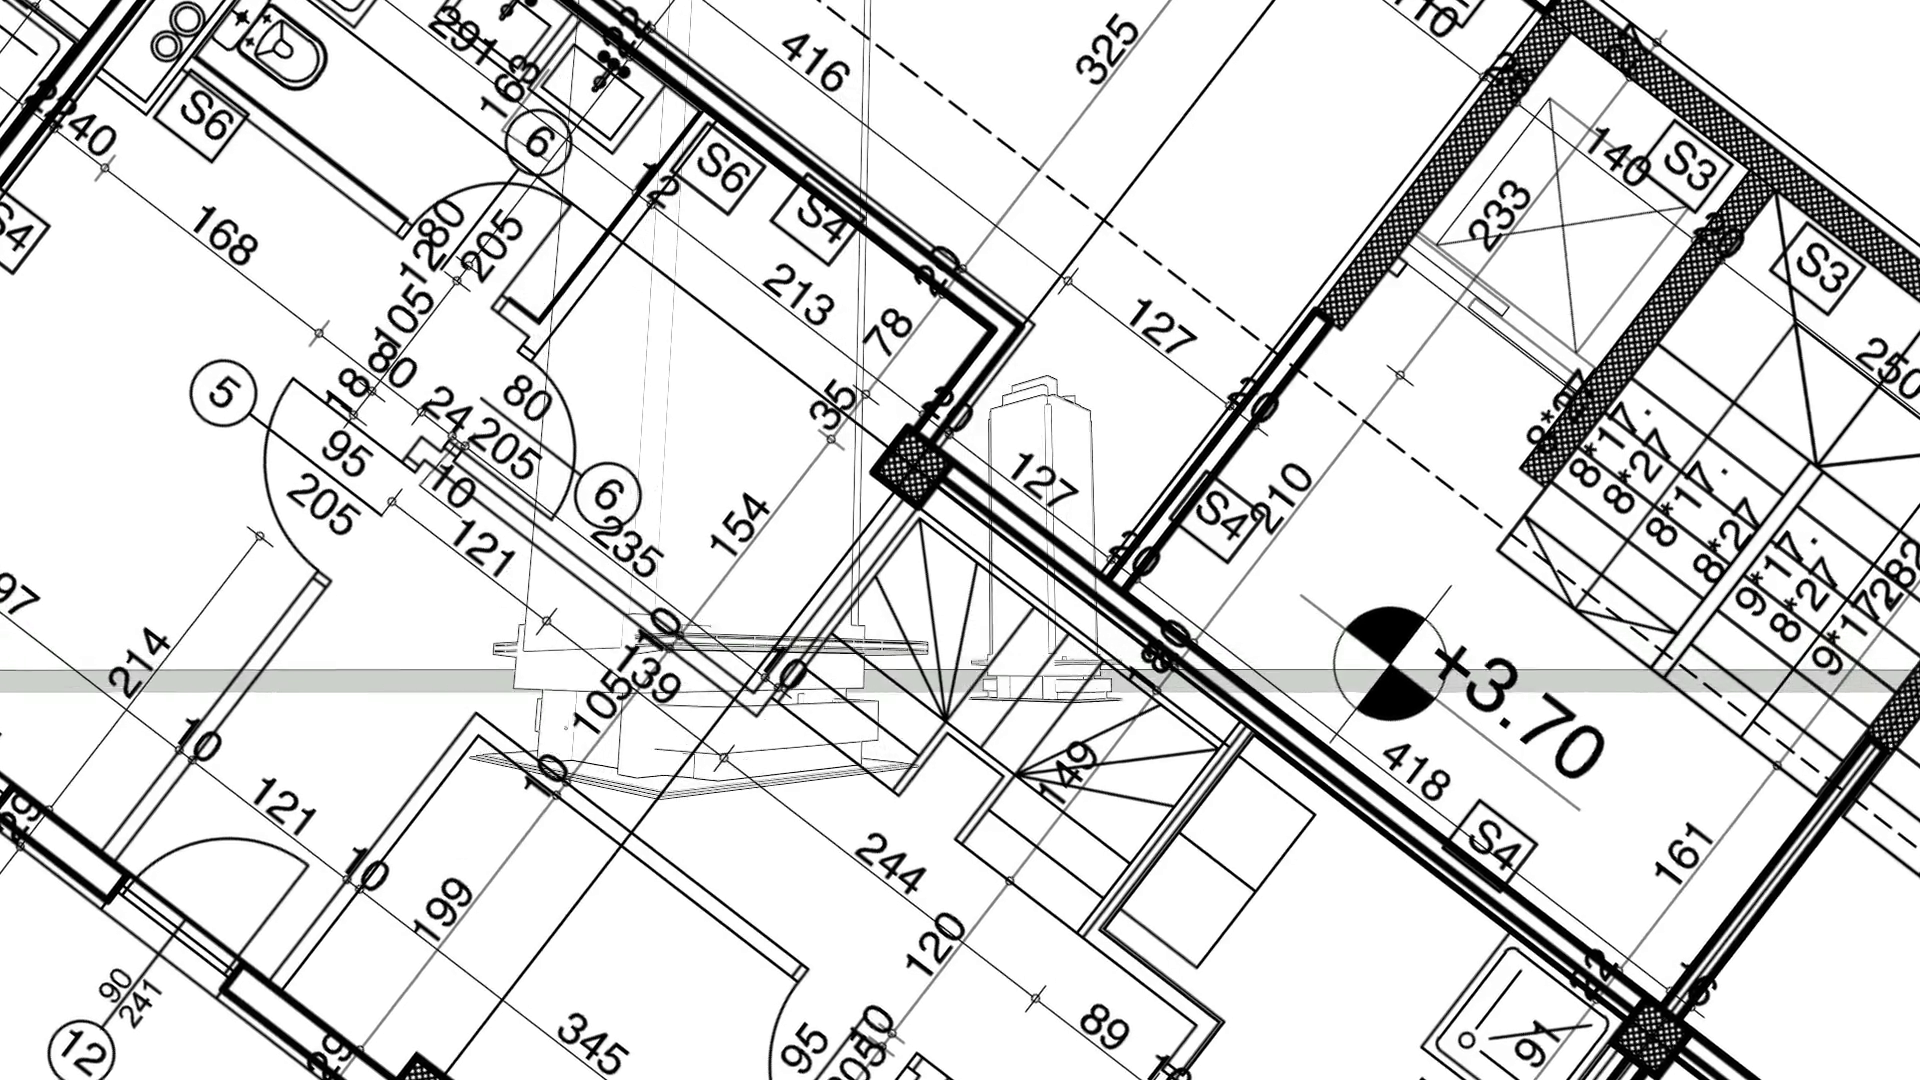 1920x1080 Abstract Architecture Background Blueprint House Plan With Sketch